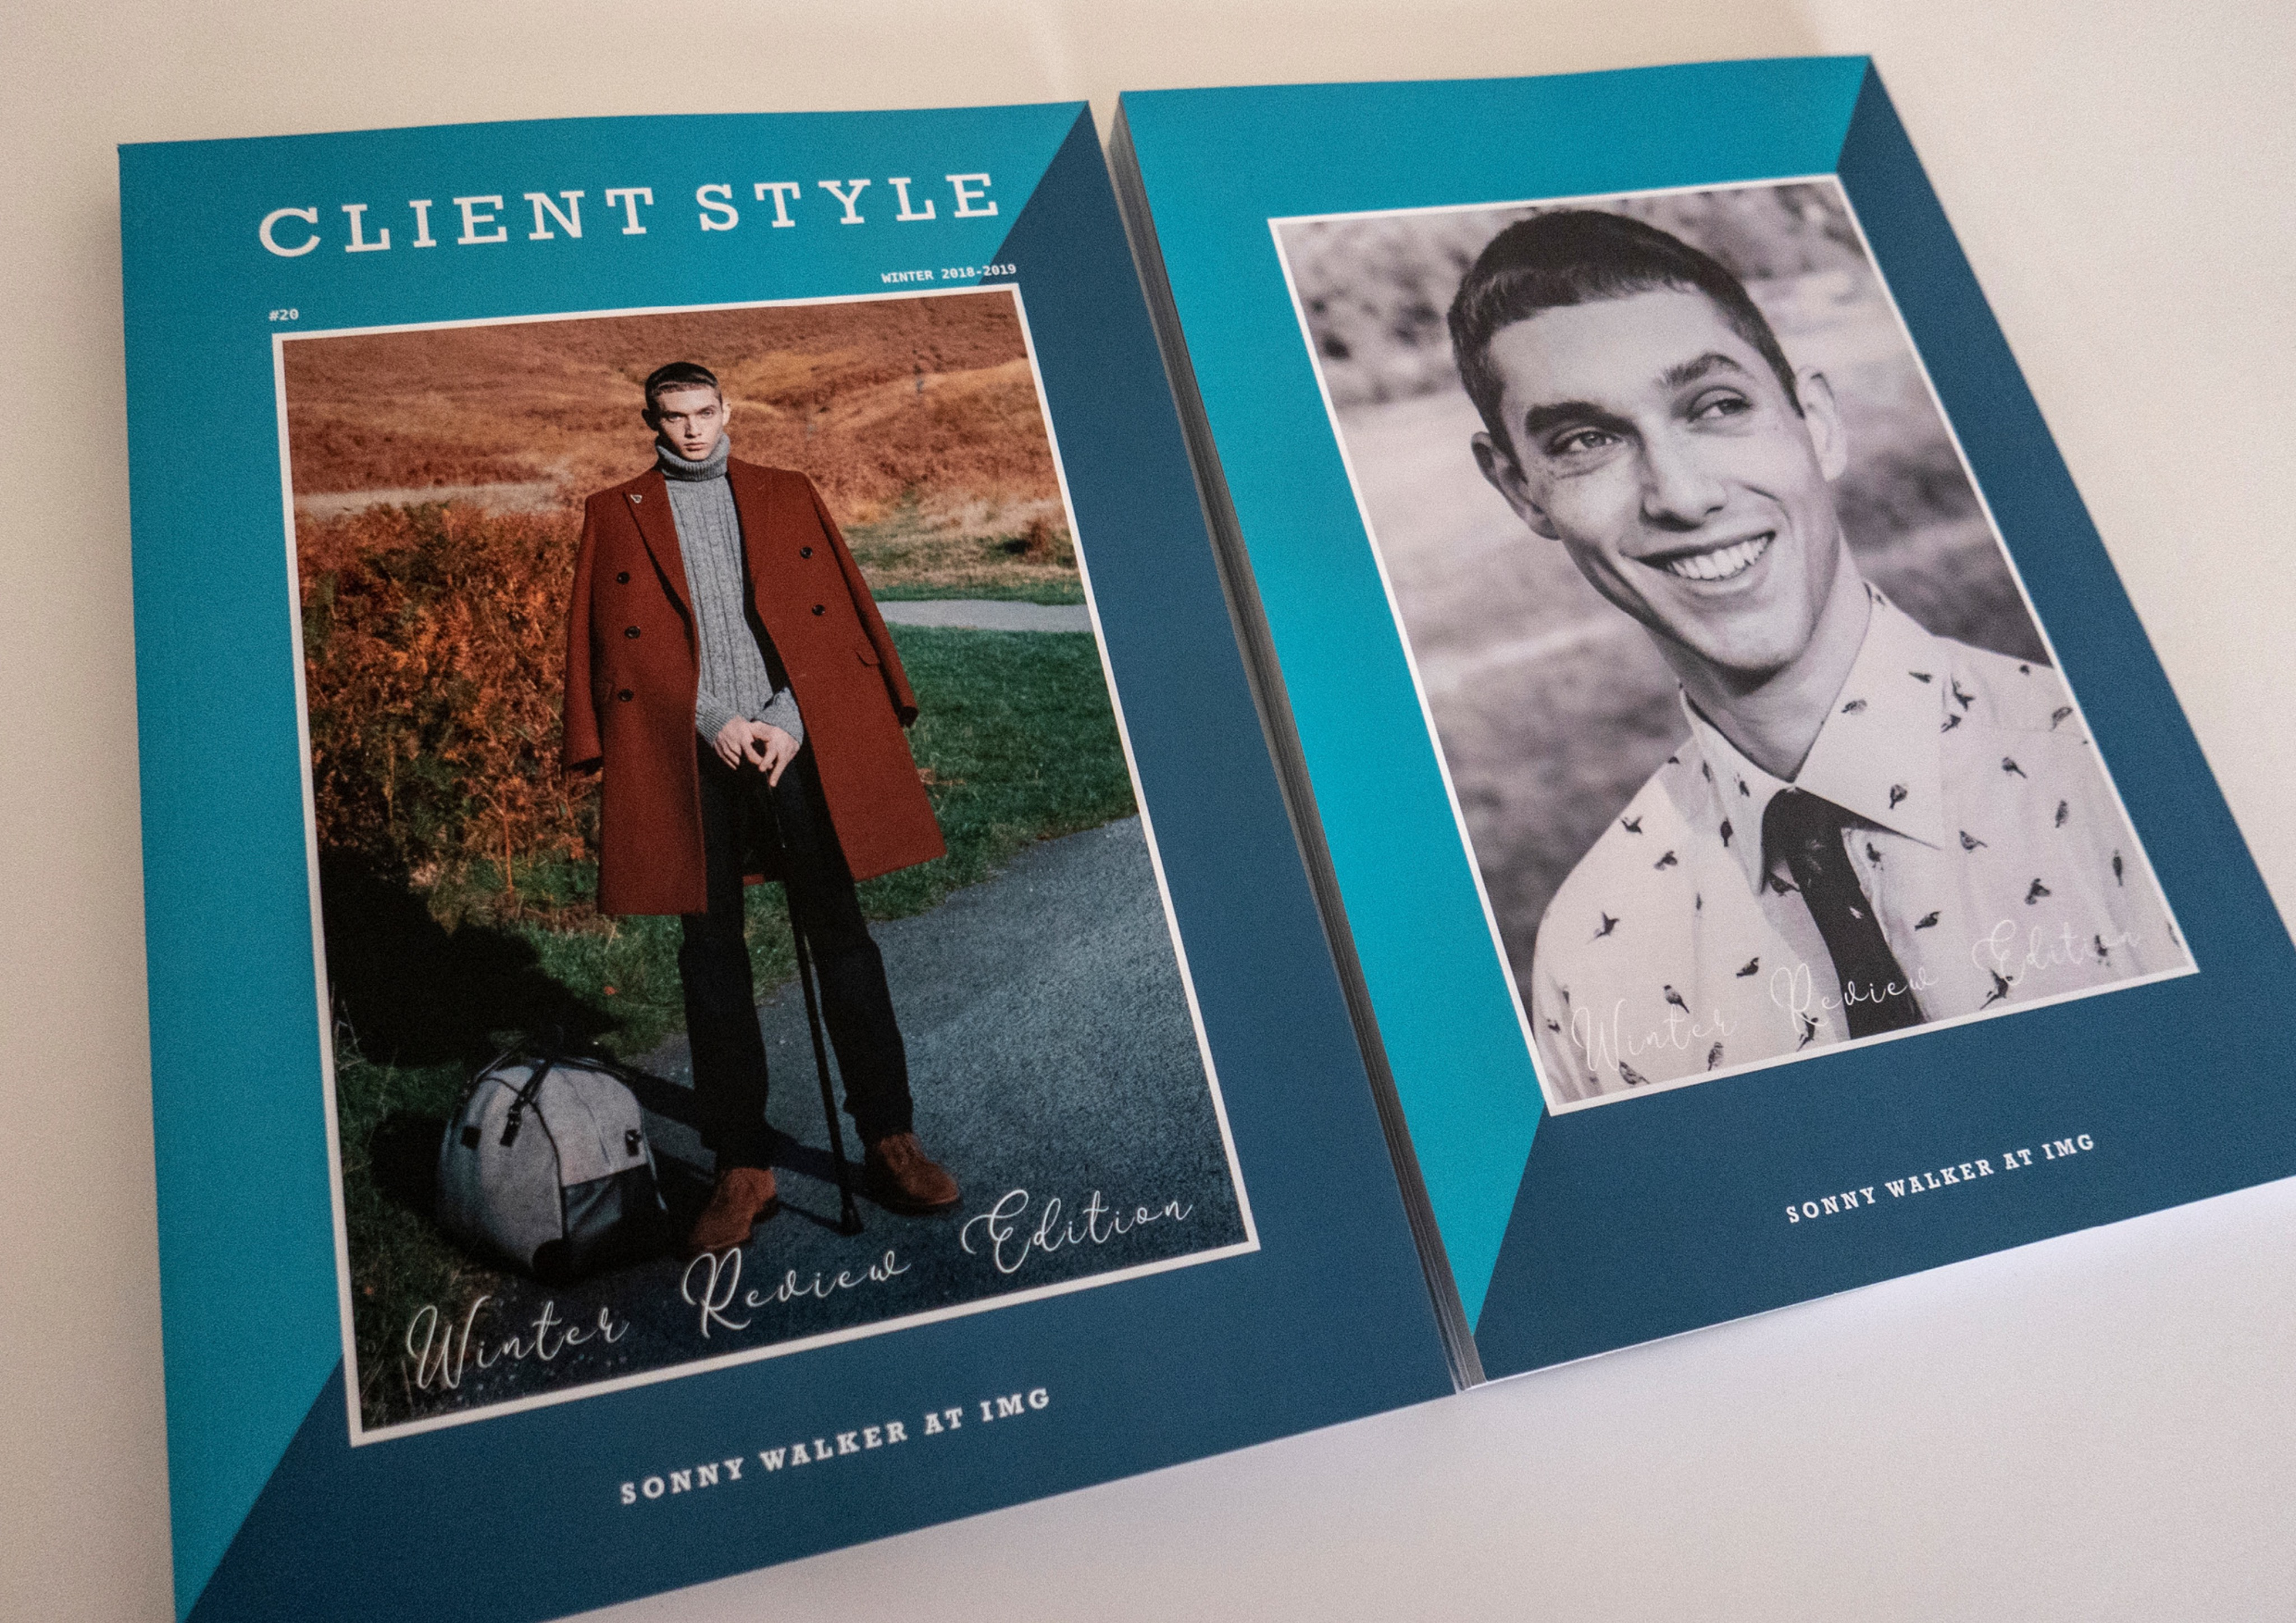 Client Style UK #20 (Print Edition)